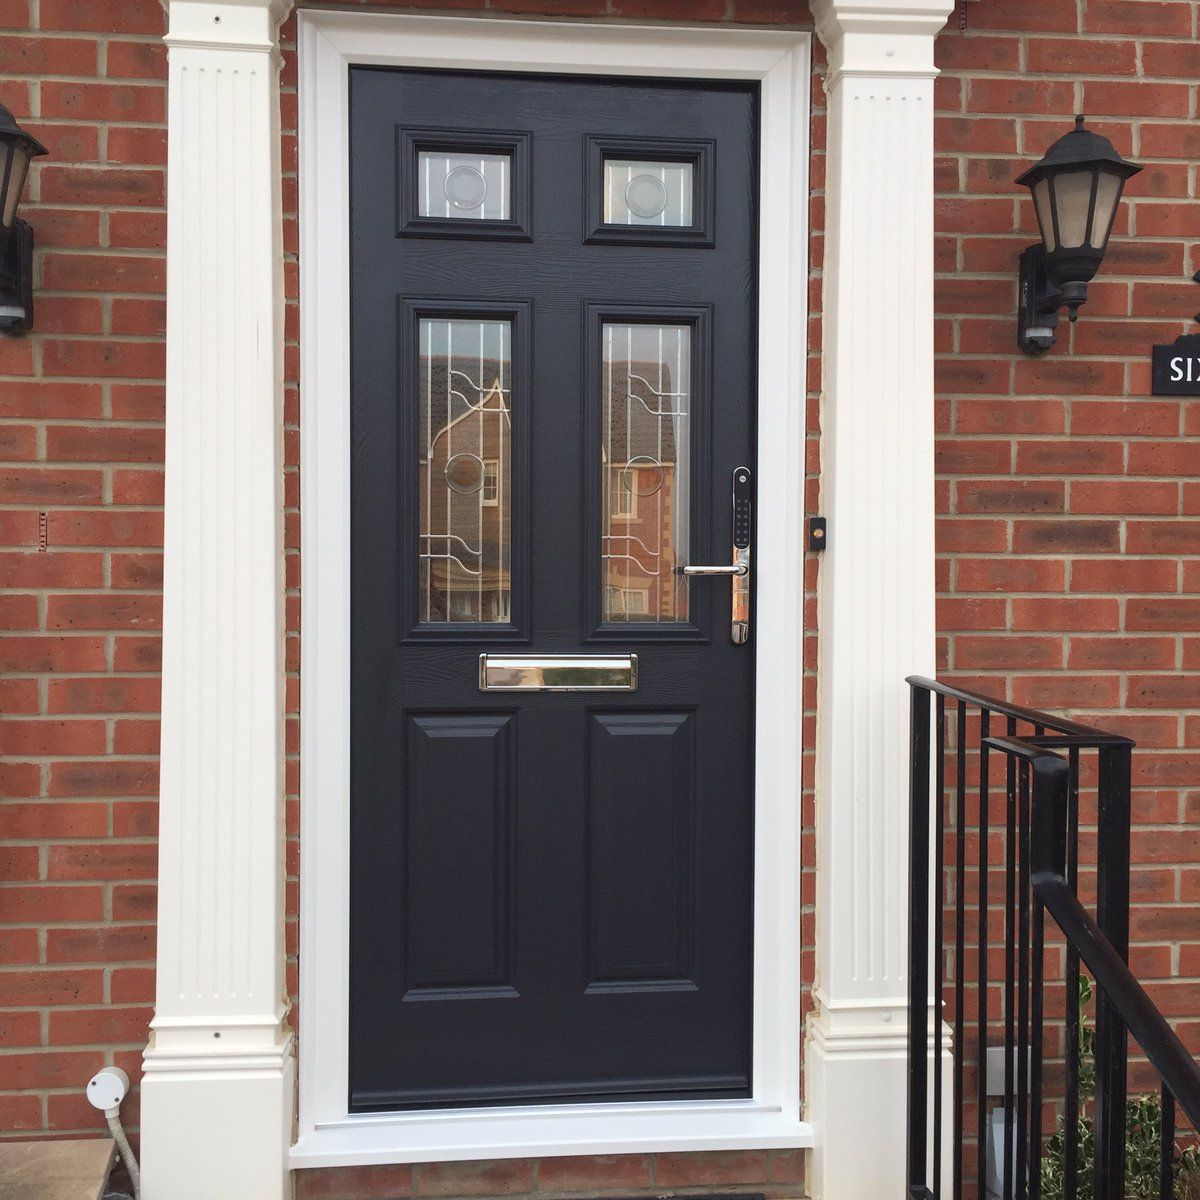 Get a list of approved composite door installers in your area. & Our classic Elbrus composite door has improved this homes aesthetic ...